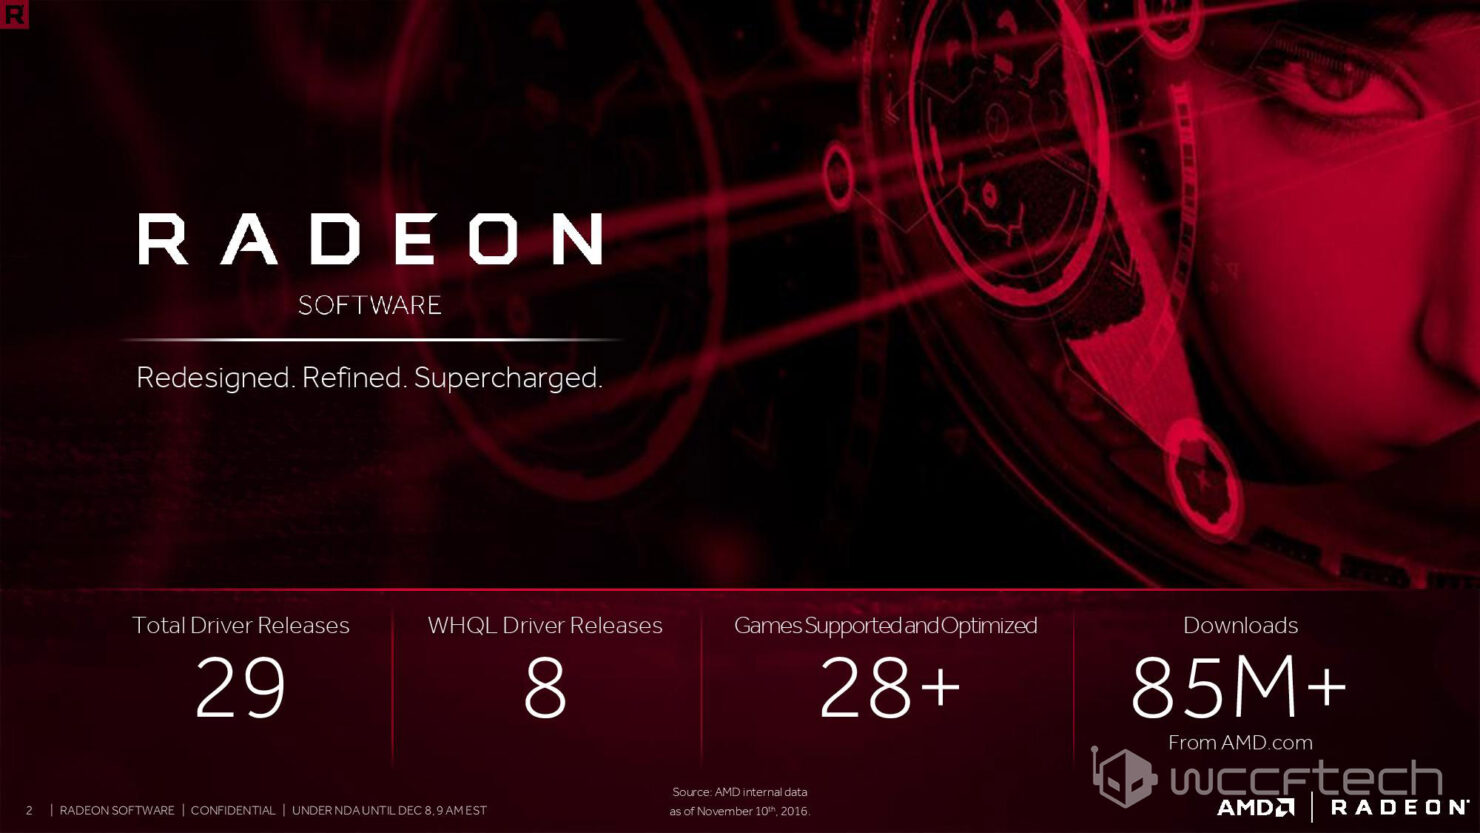 radeon-software-crimson-relive-nda-only-confidential-v4-page-002-copy